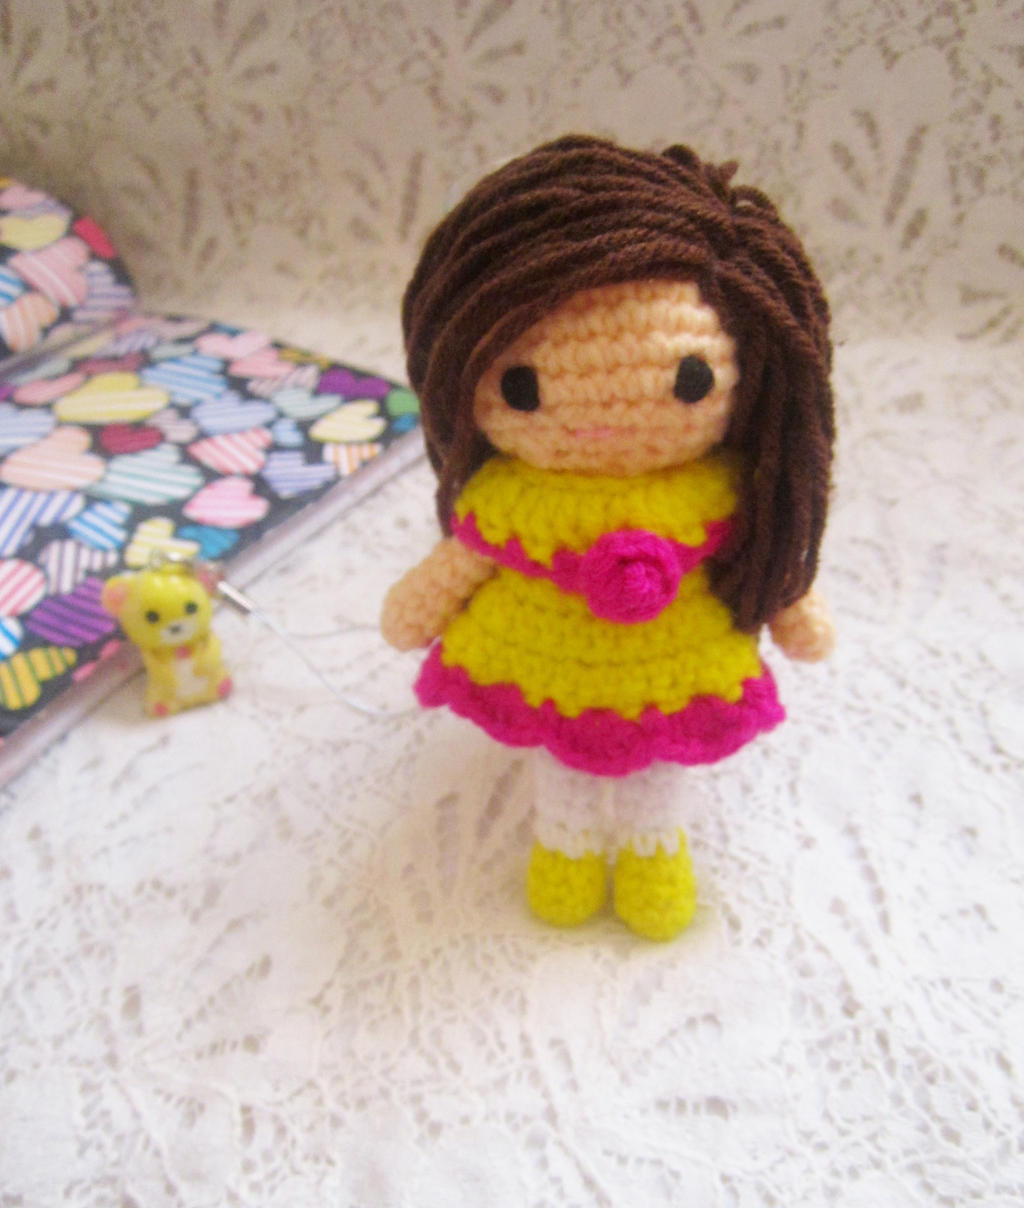 Amigurumi Chibi Doll Pattern Free : Little amigurumi doll free pattern by anitadoma on deviantart